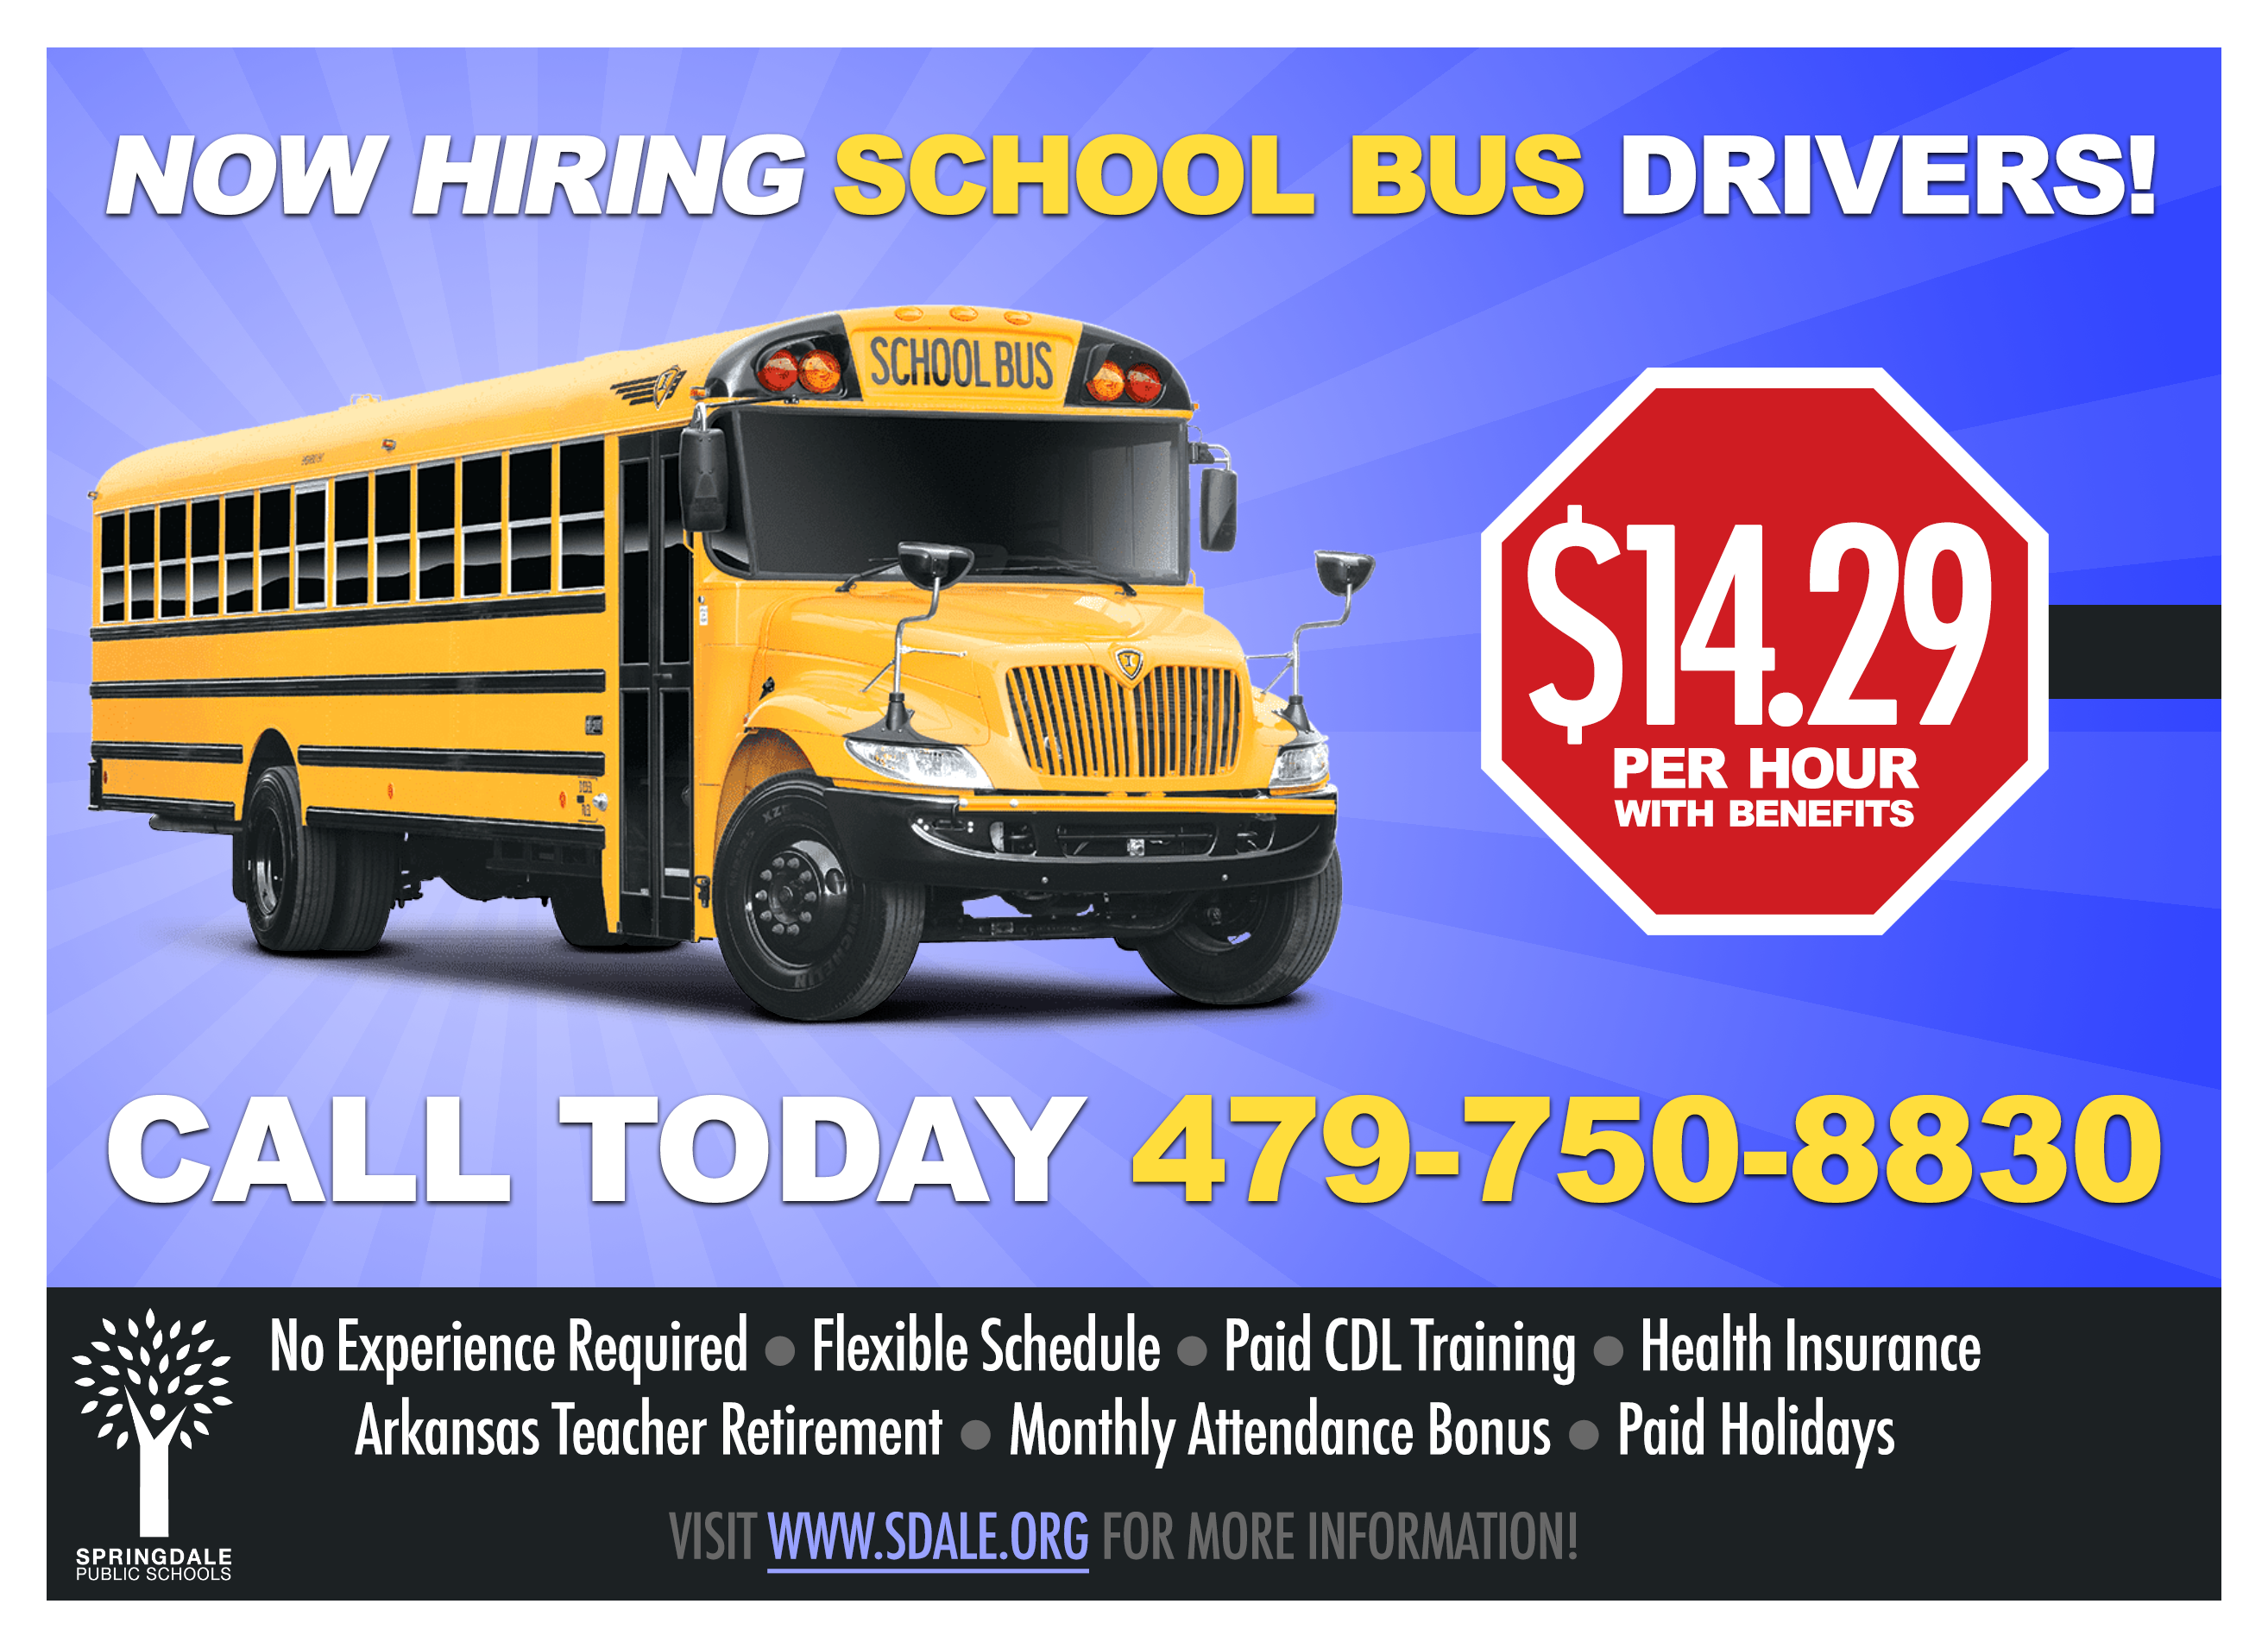 Now Hiring School Bus Drivers Graphic